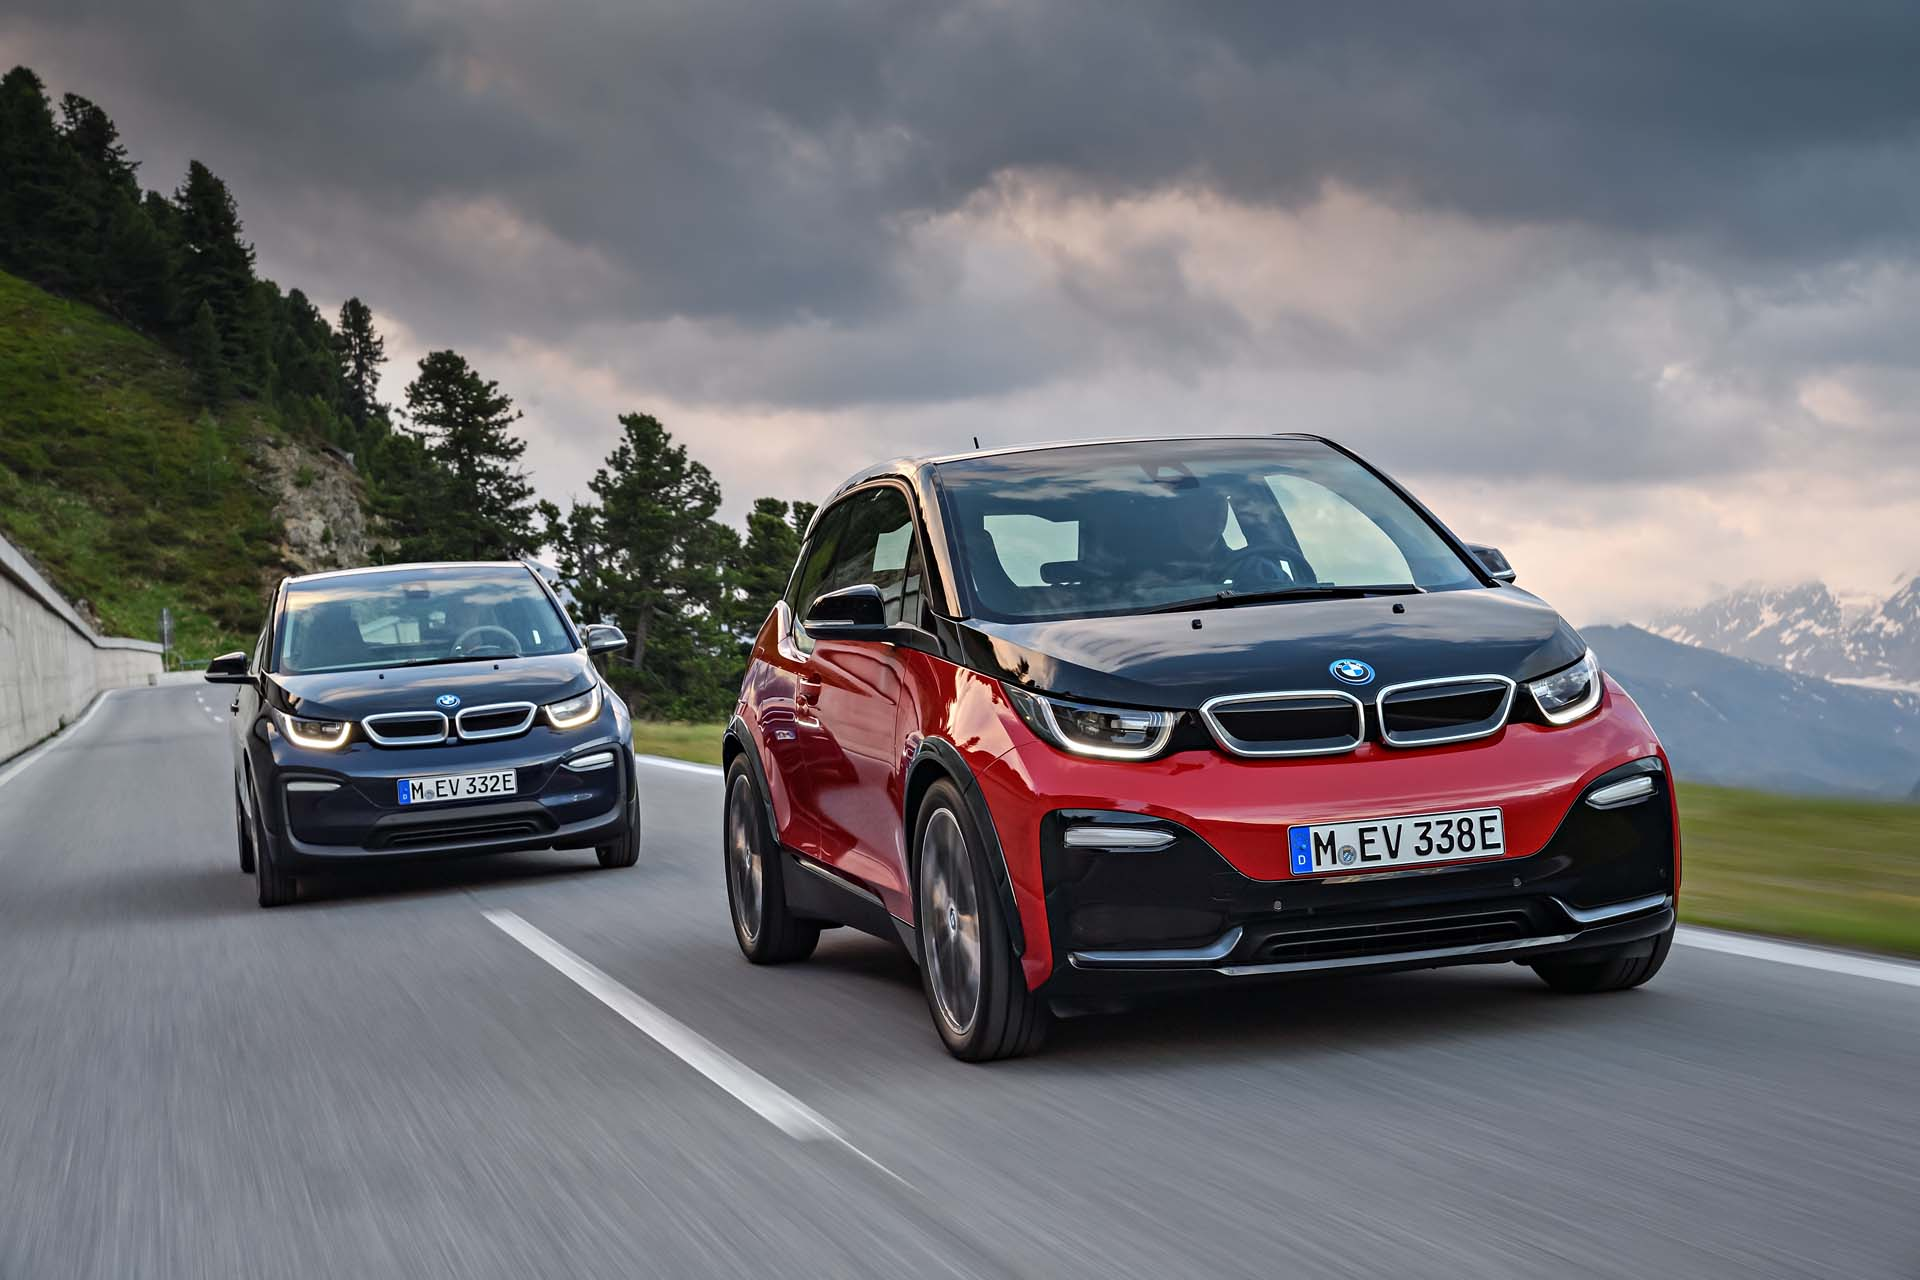 2018 Bmw I3 Electric Car Range Adds Sportier I3s Version